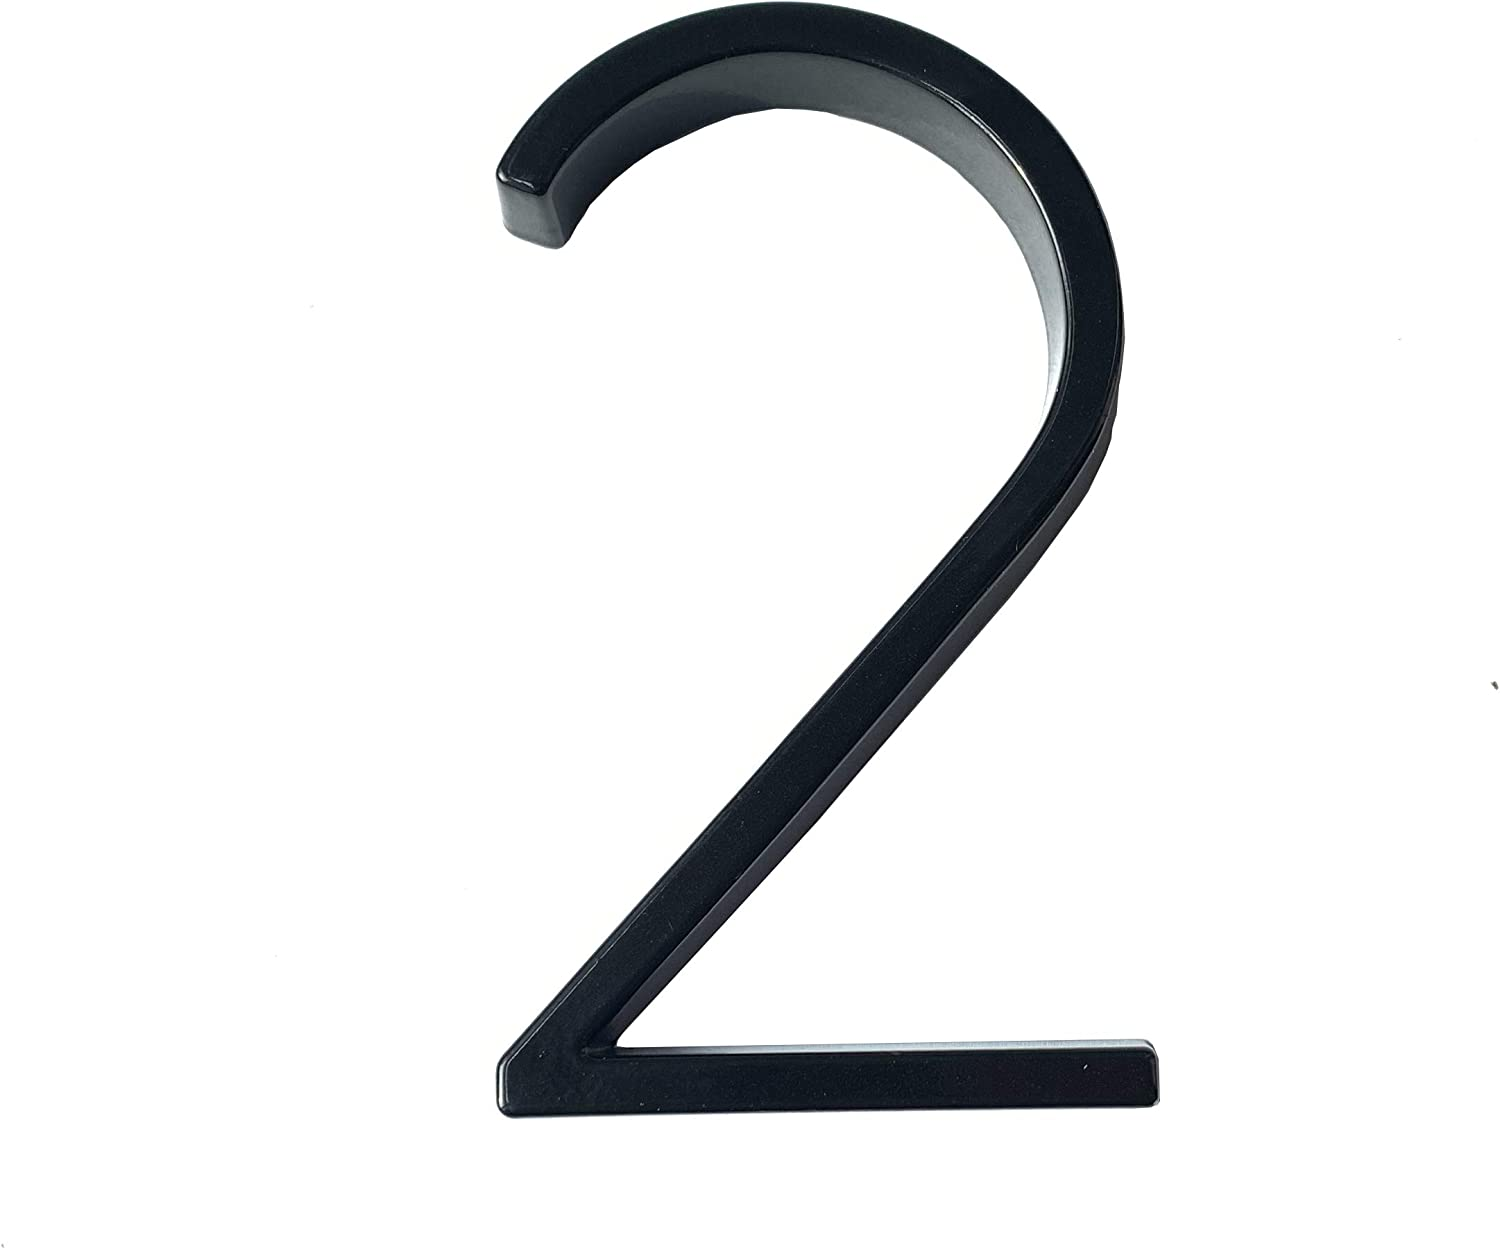 Bebarley 5 Inch Modern Black Zinc Alloy Floating Mount House Numbers and Street Address Plaques Door Numbers